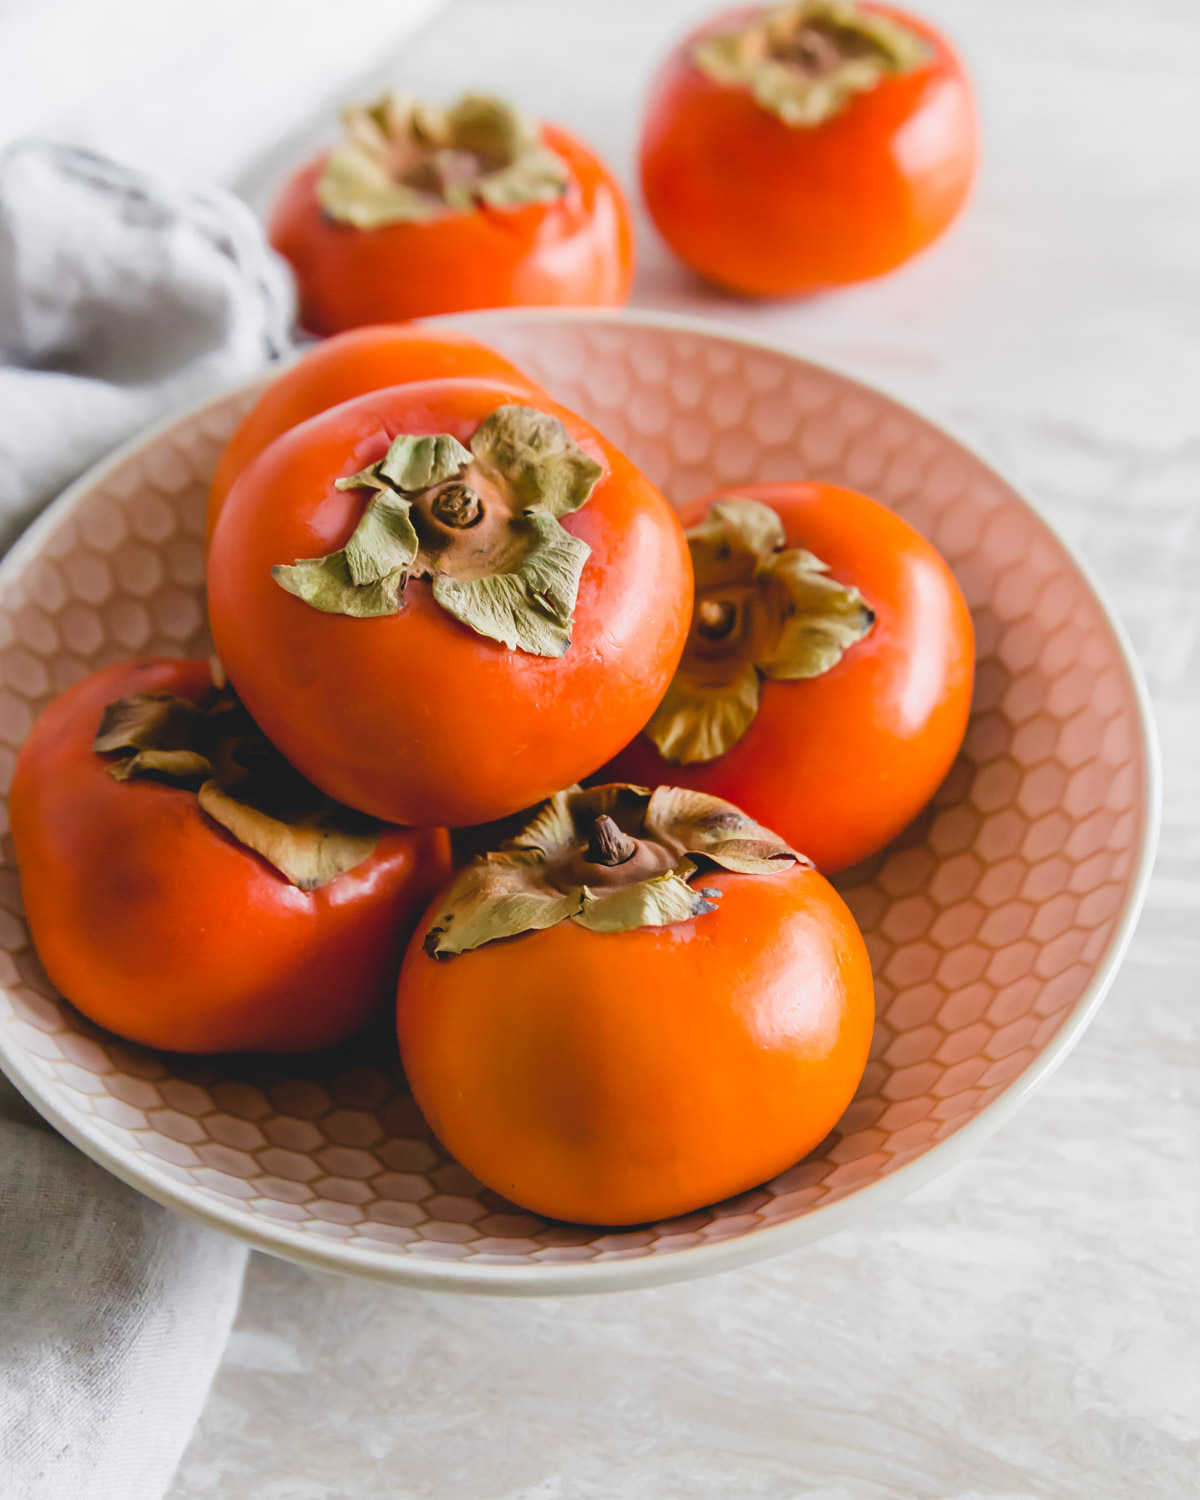 Fuyu persimmons in a bowl to make persimmon jam